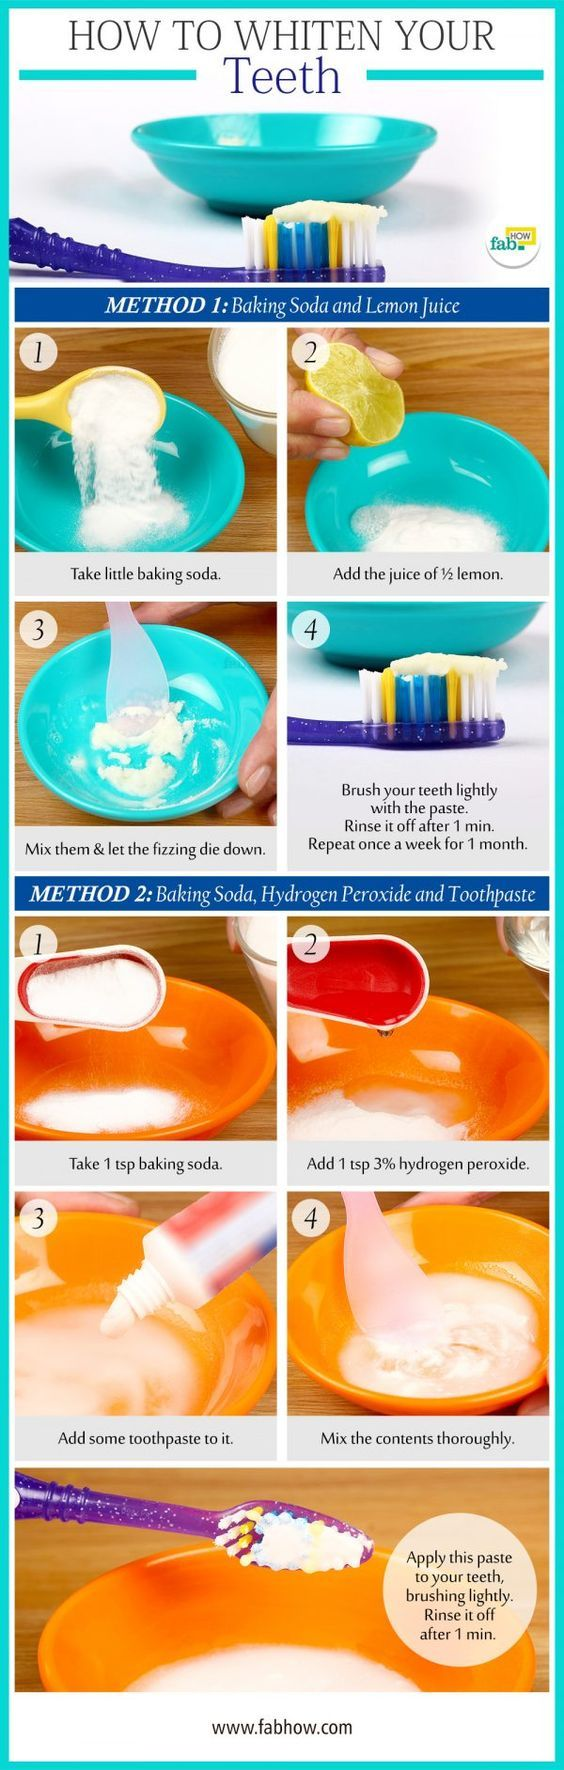 How to Whiten your Yellow Teeth in 2 Minutes